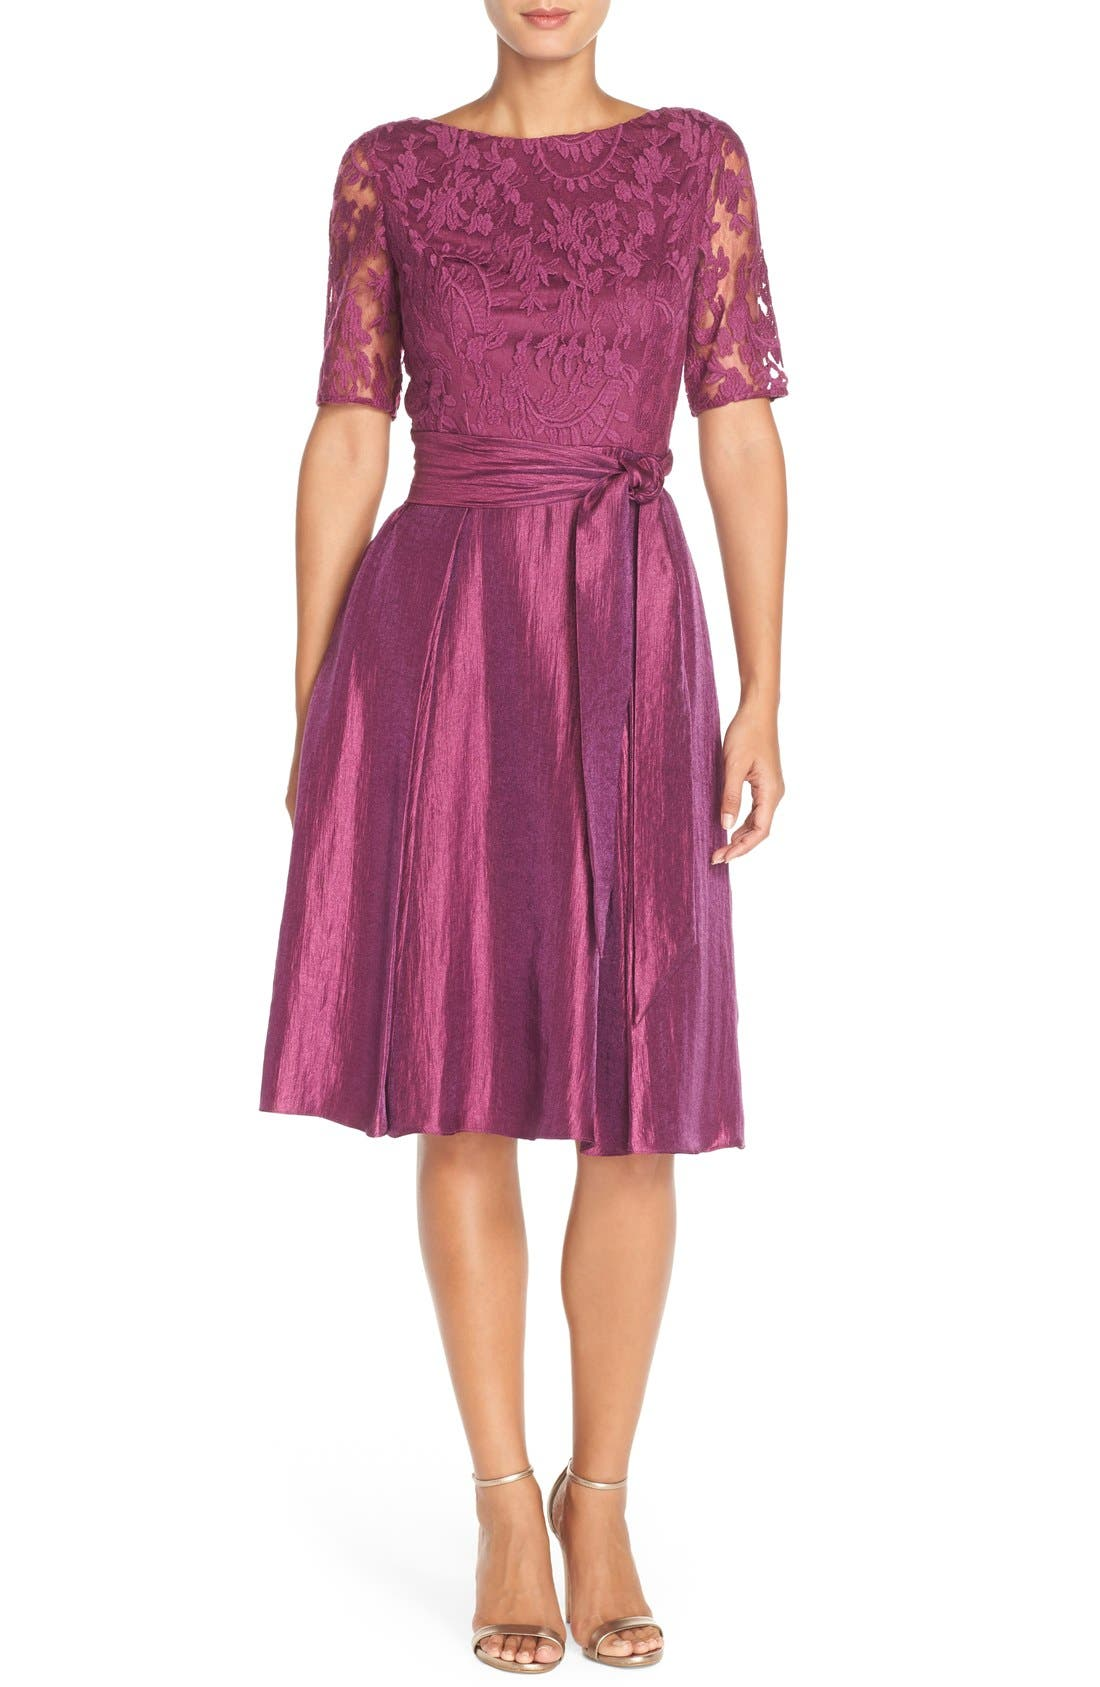 Alternate Image 1 Selected - Adrianna PapellEmbroideredShimmer Fit & Flare Dress